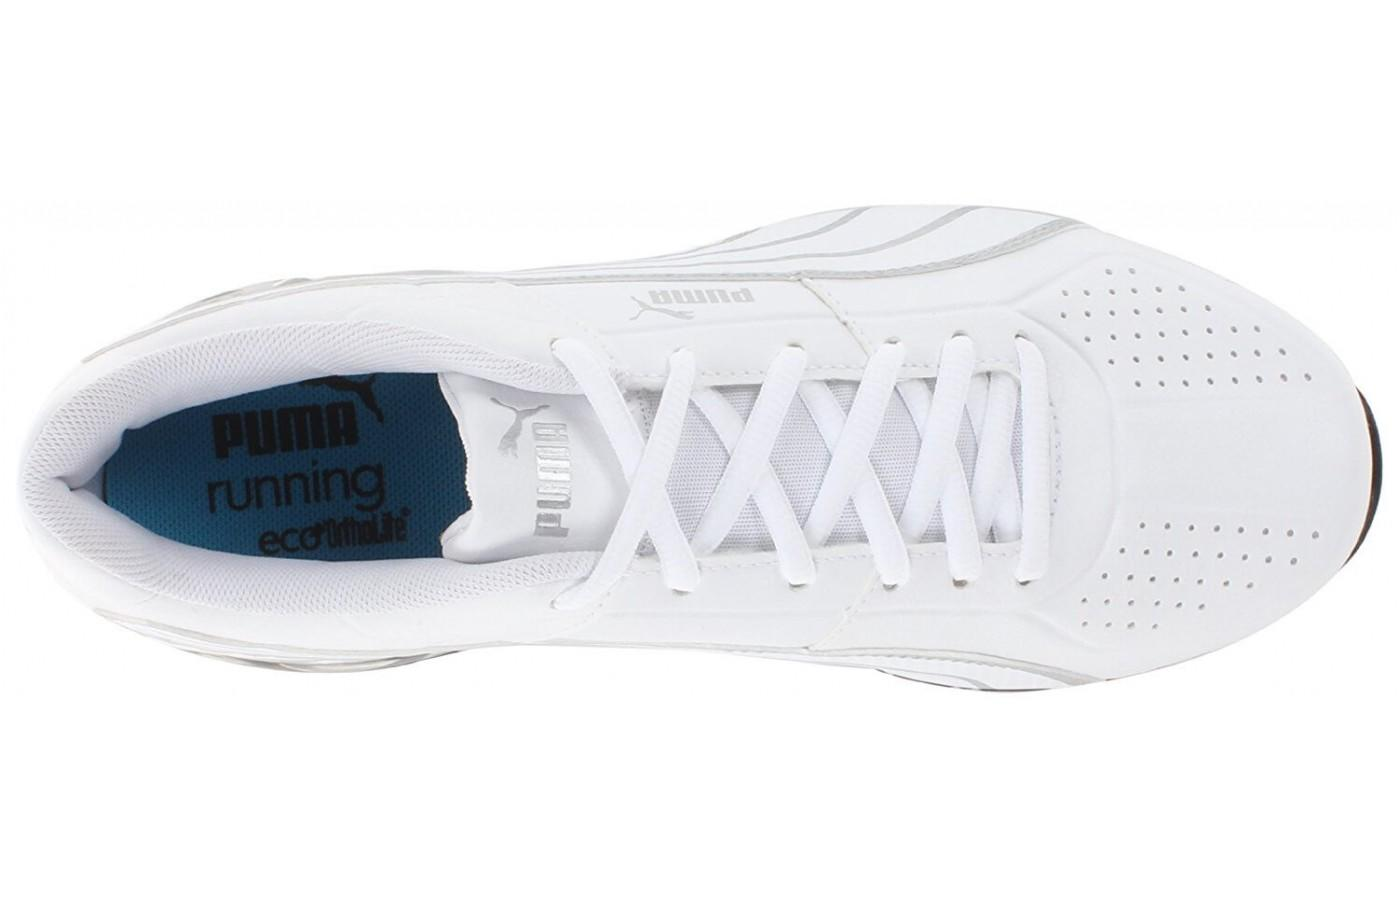 The classic lace up design and breathable upper provides a supportive, comfortable fit and feel.